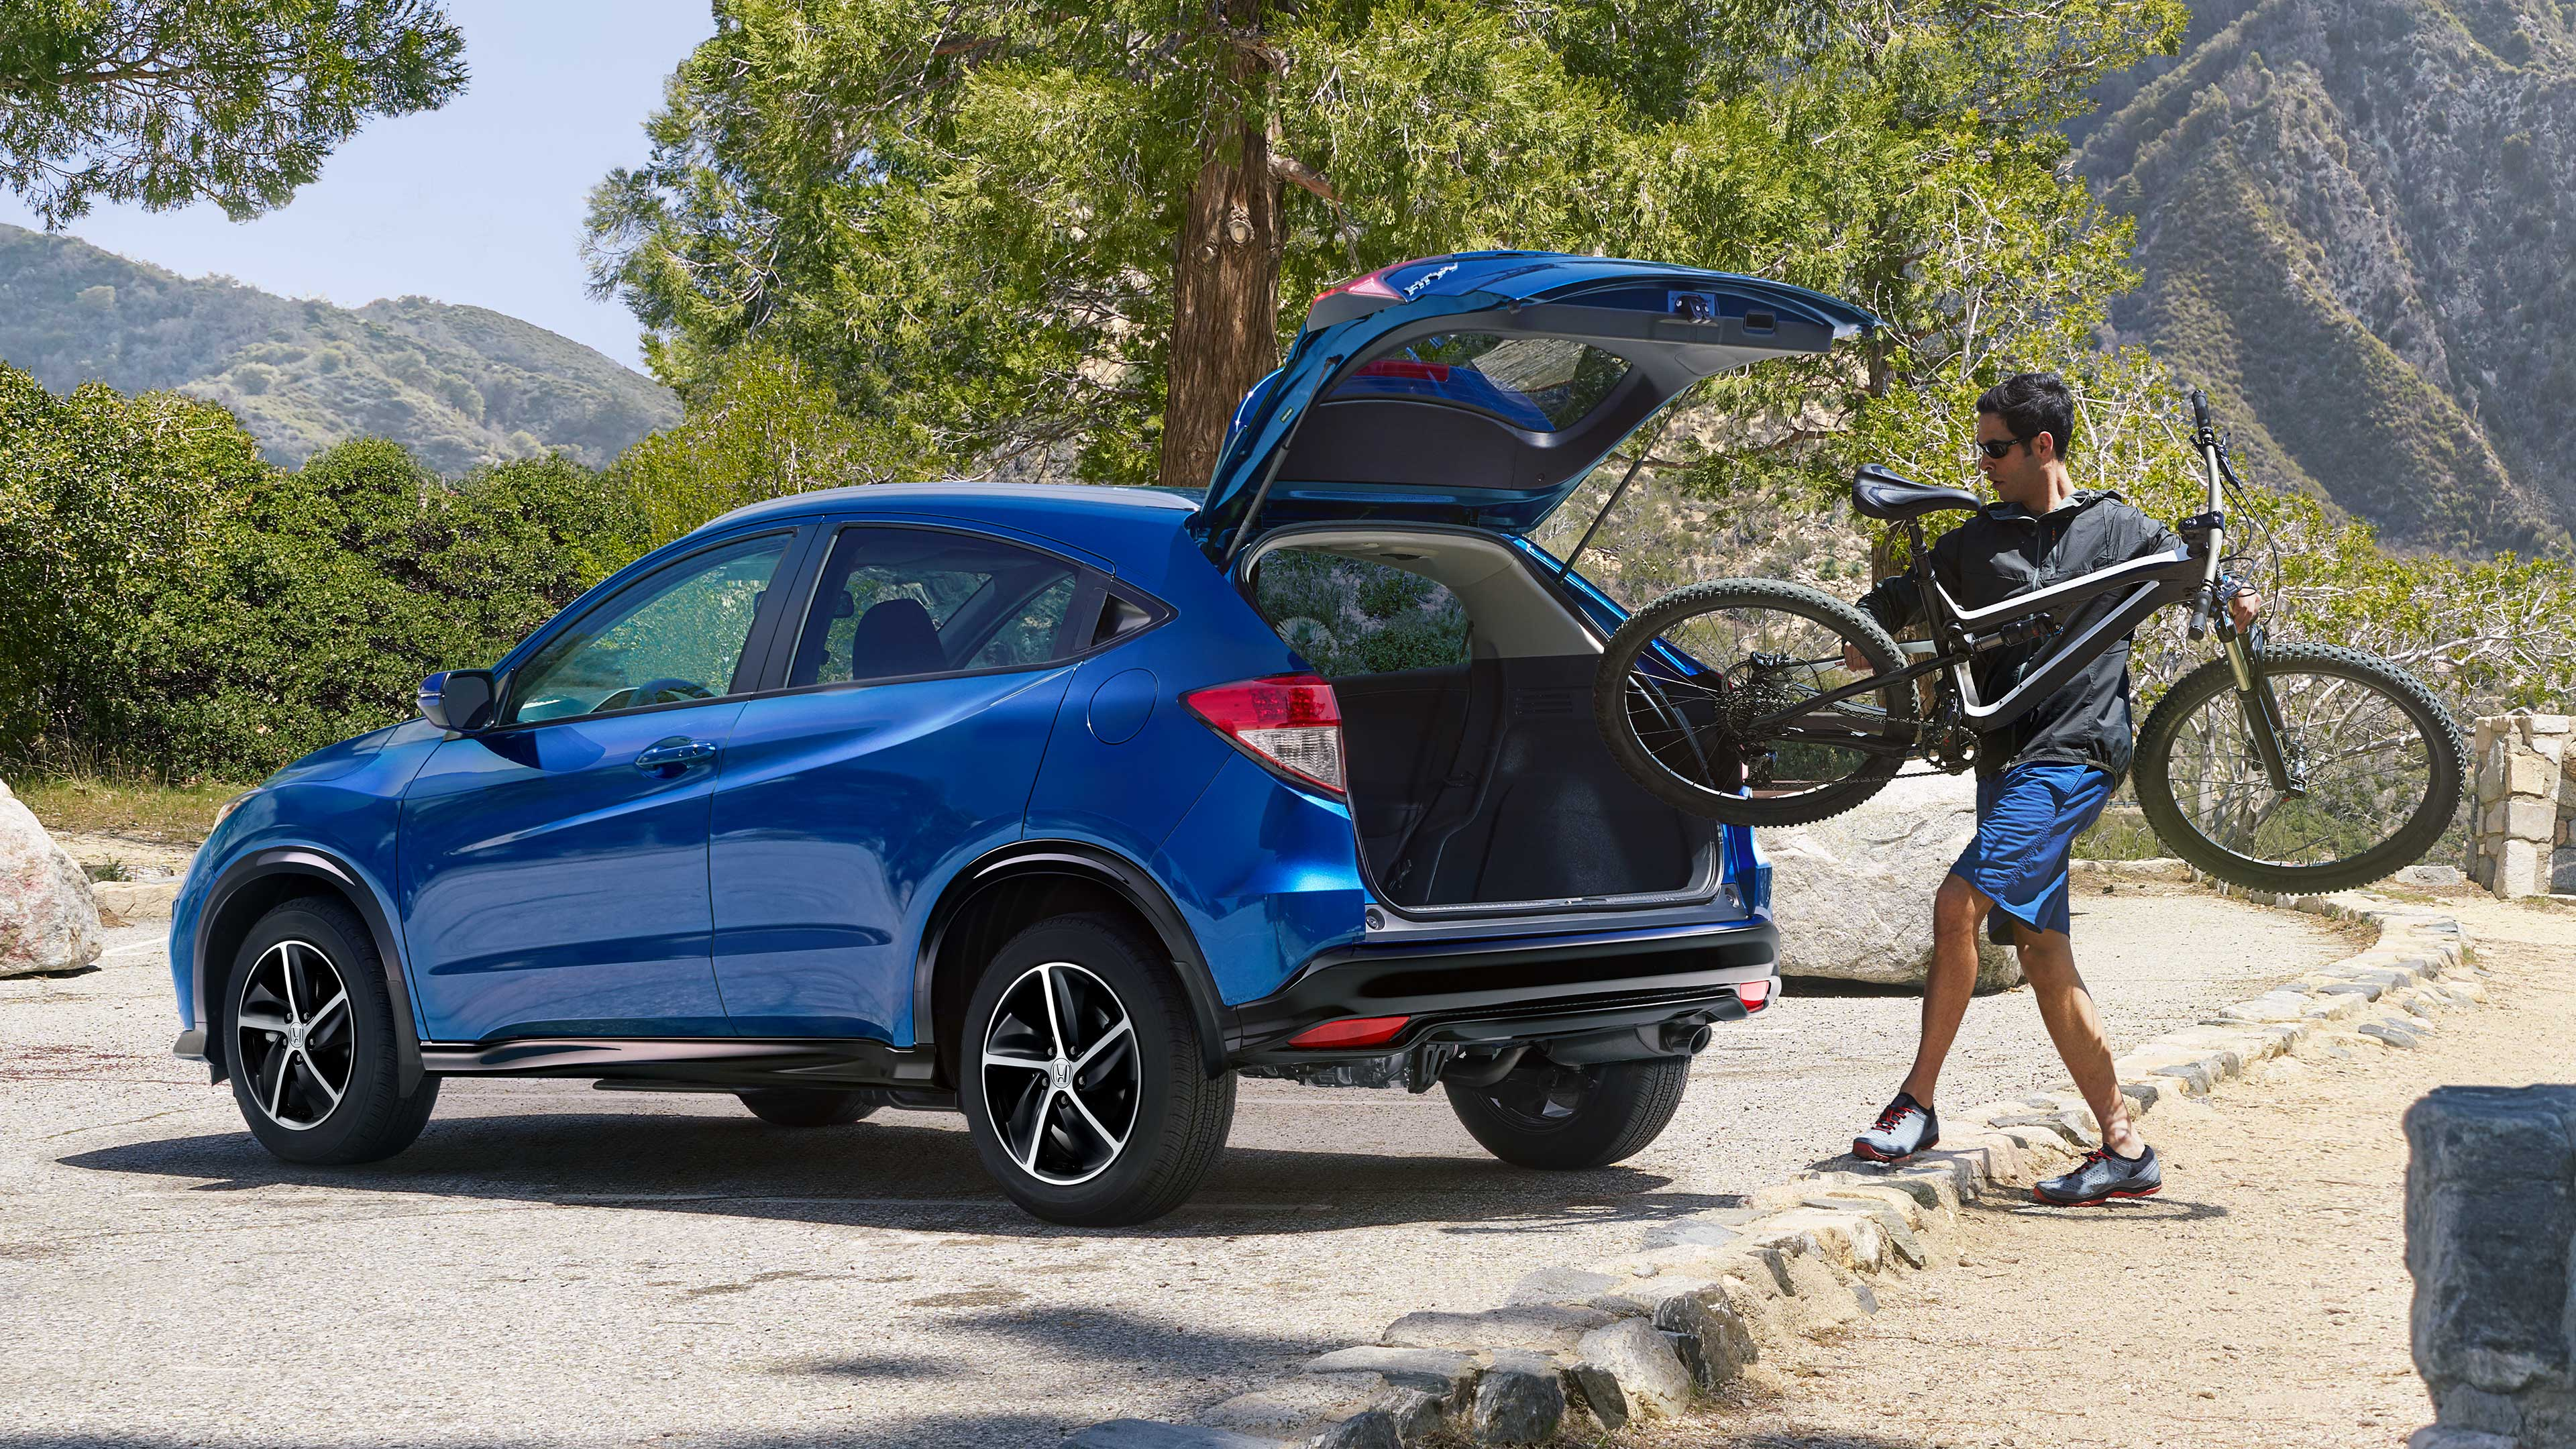 Man loading a bike into the back of a 2020 Honda HR-V